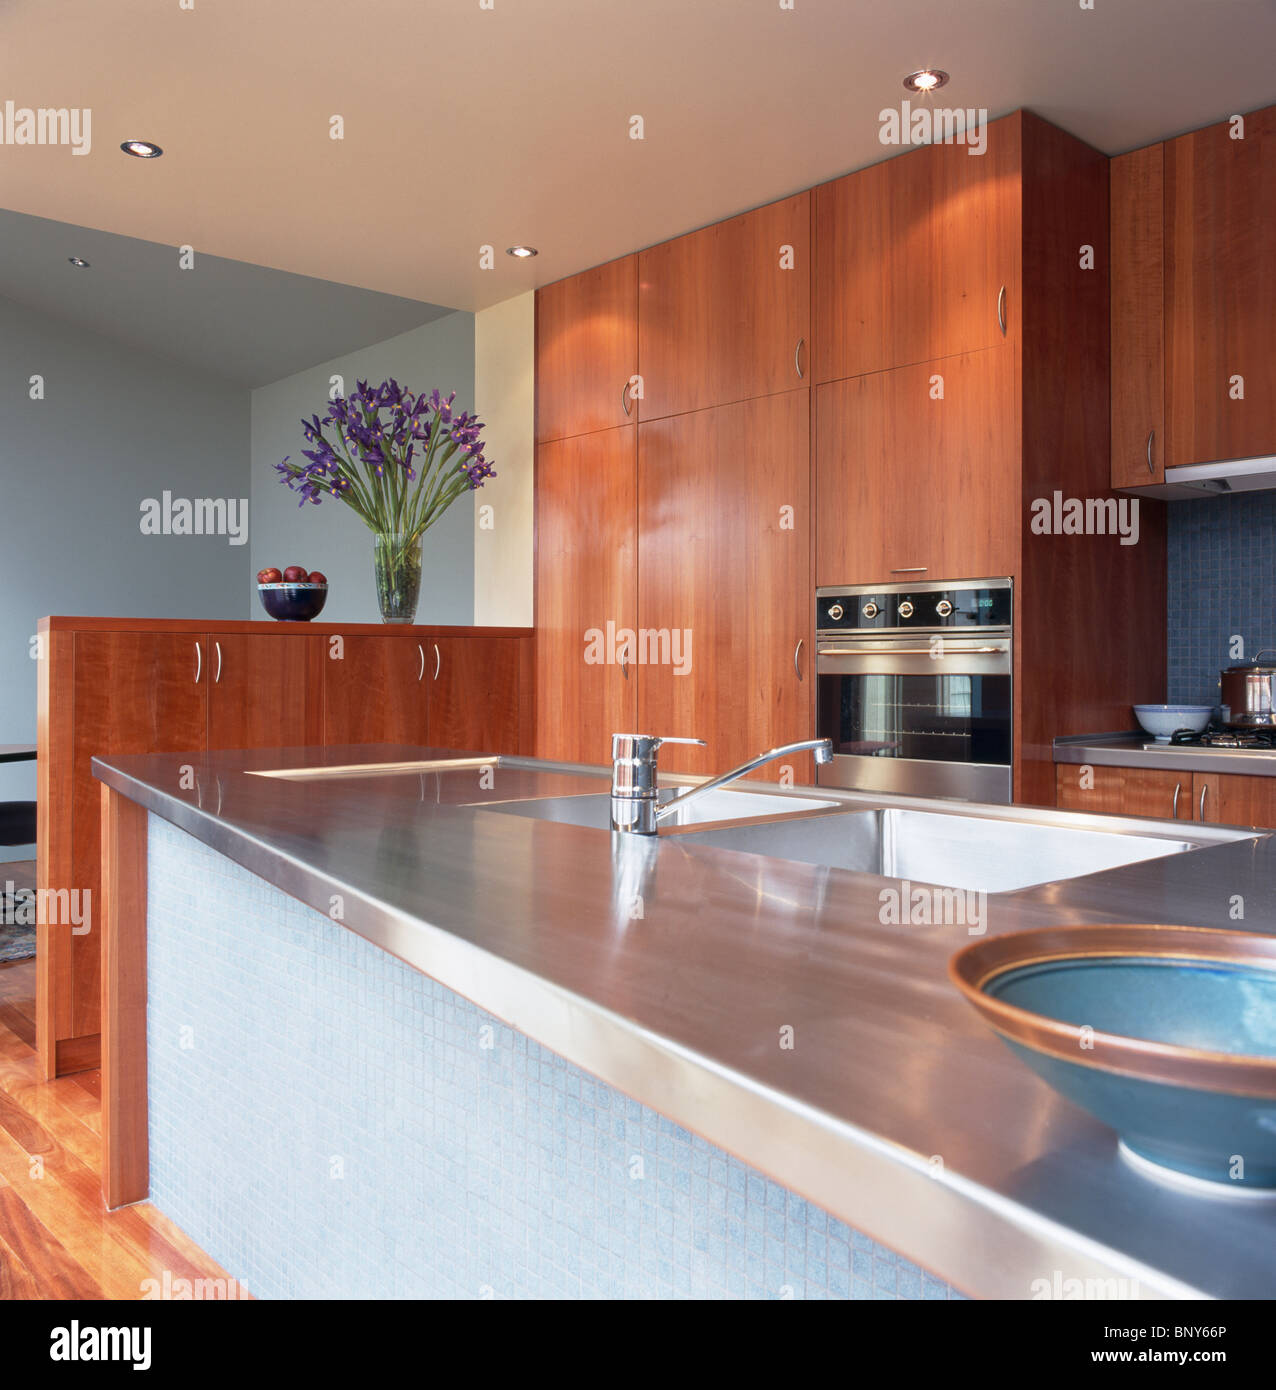 Charmant Stainless Steel Worktop On Island Unit With Sink In Pale ...